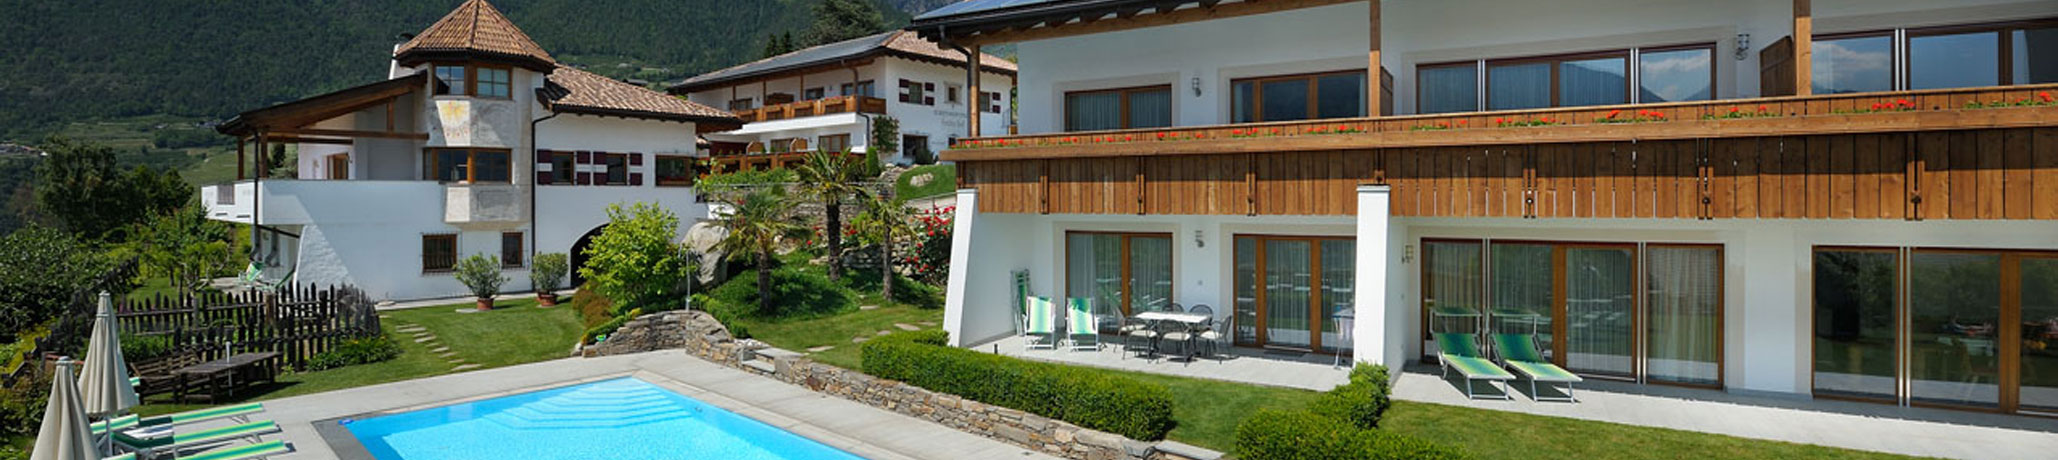 Apartments with swimming pool at Tirolo